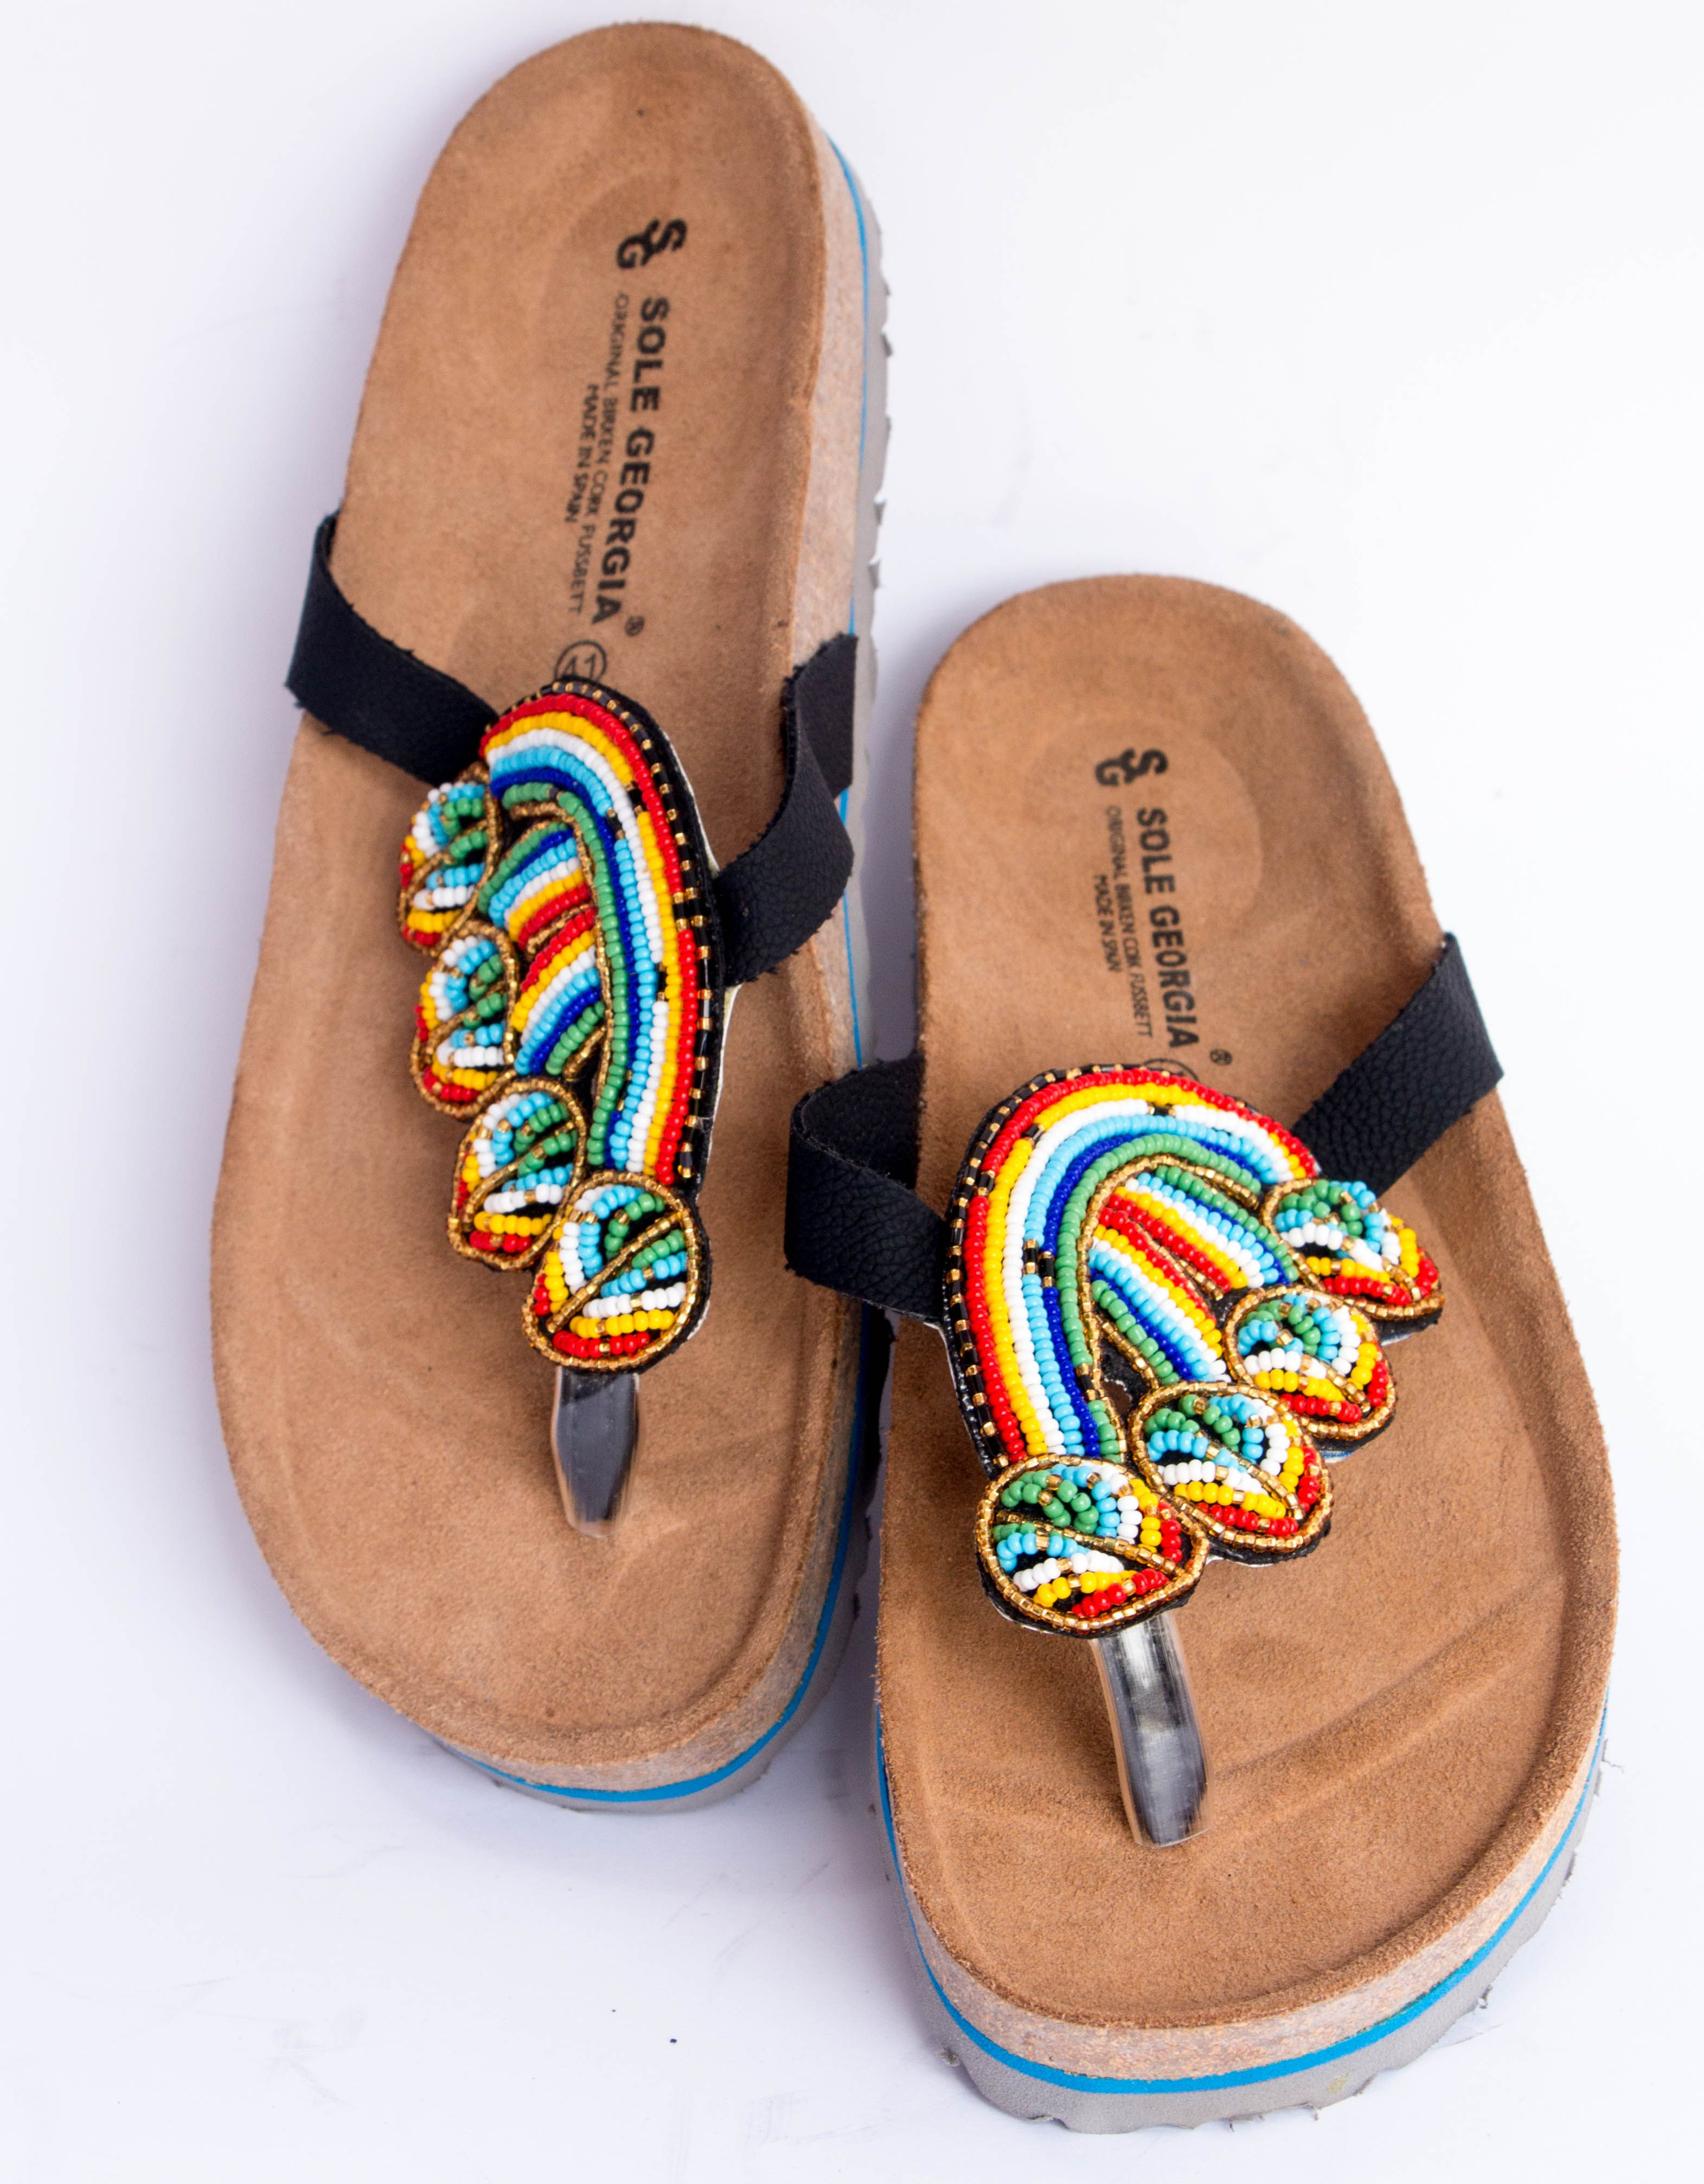 92e59a79cde4 Mekay beaded birkenstock slipper. Design - Tooth Comb  pamperyourfeet   madeingh  ABL  ENT